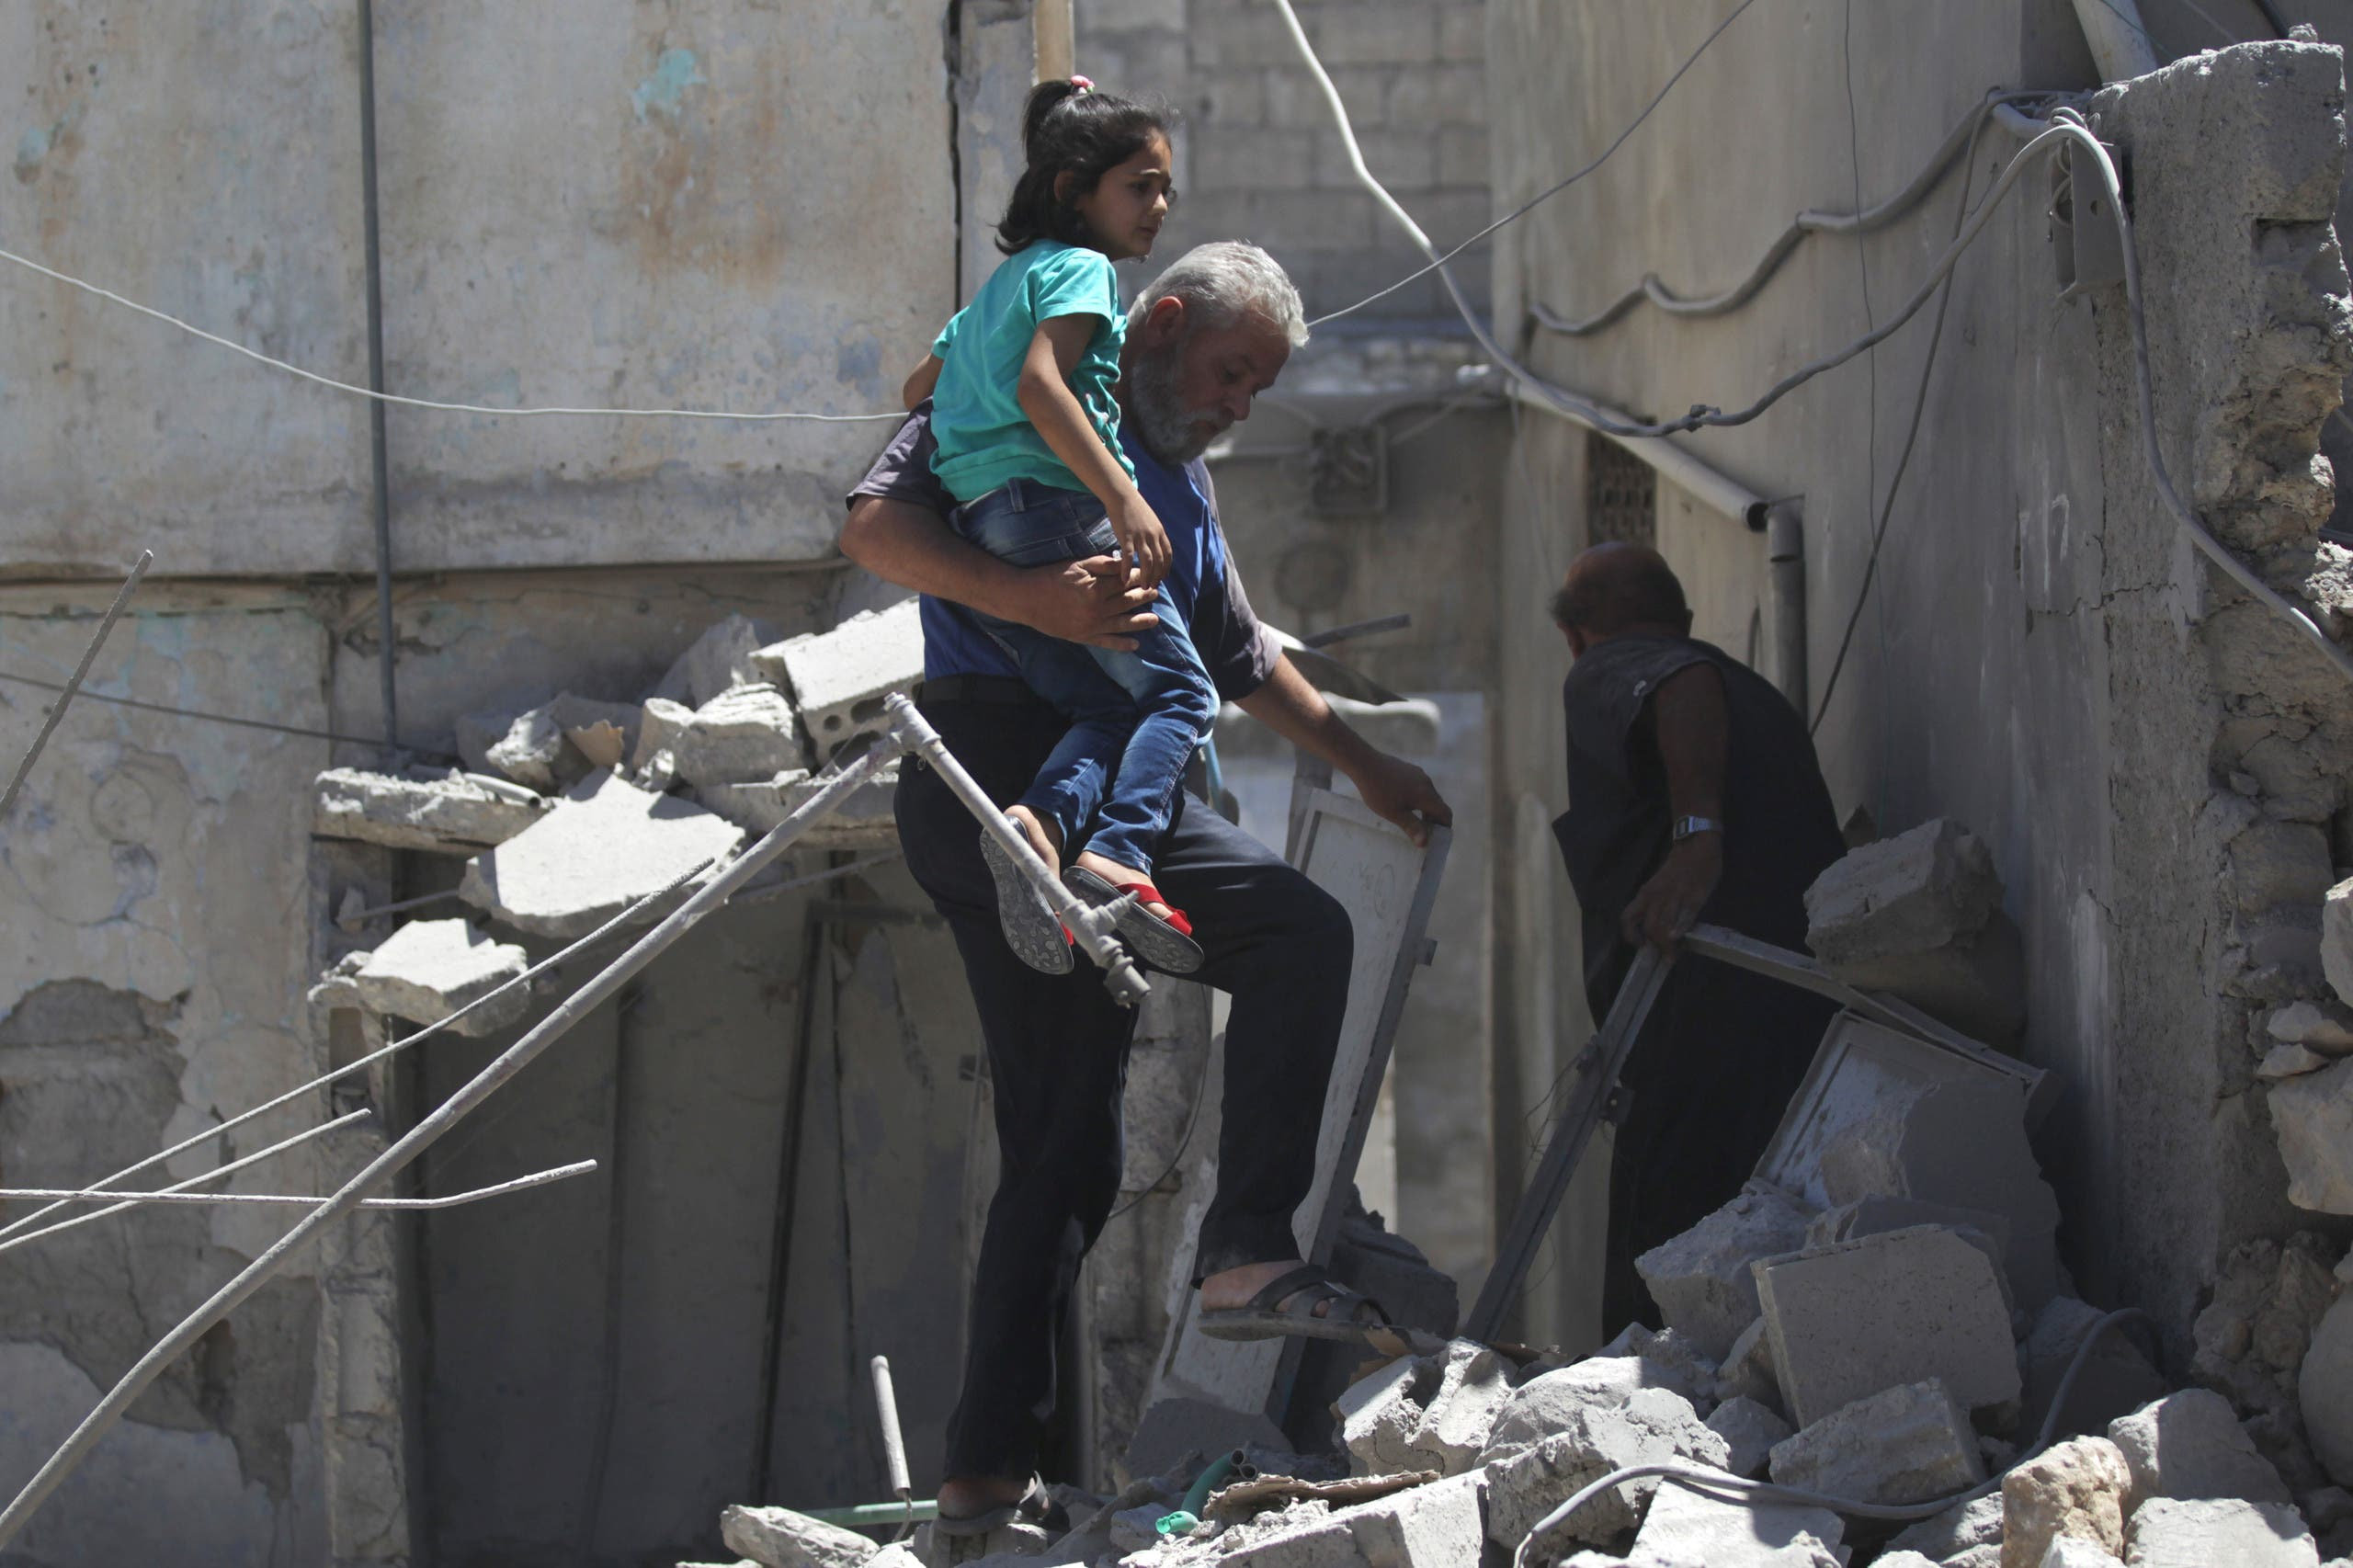 A man carries a girl as he makes his way through the rubble at a site hit by airstrike in the rebel-controlled area of Maaret al-Numan town in Idlib province, Syria, June 12, 2016. REUTERS